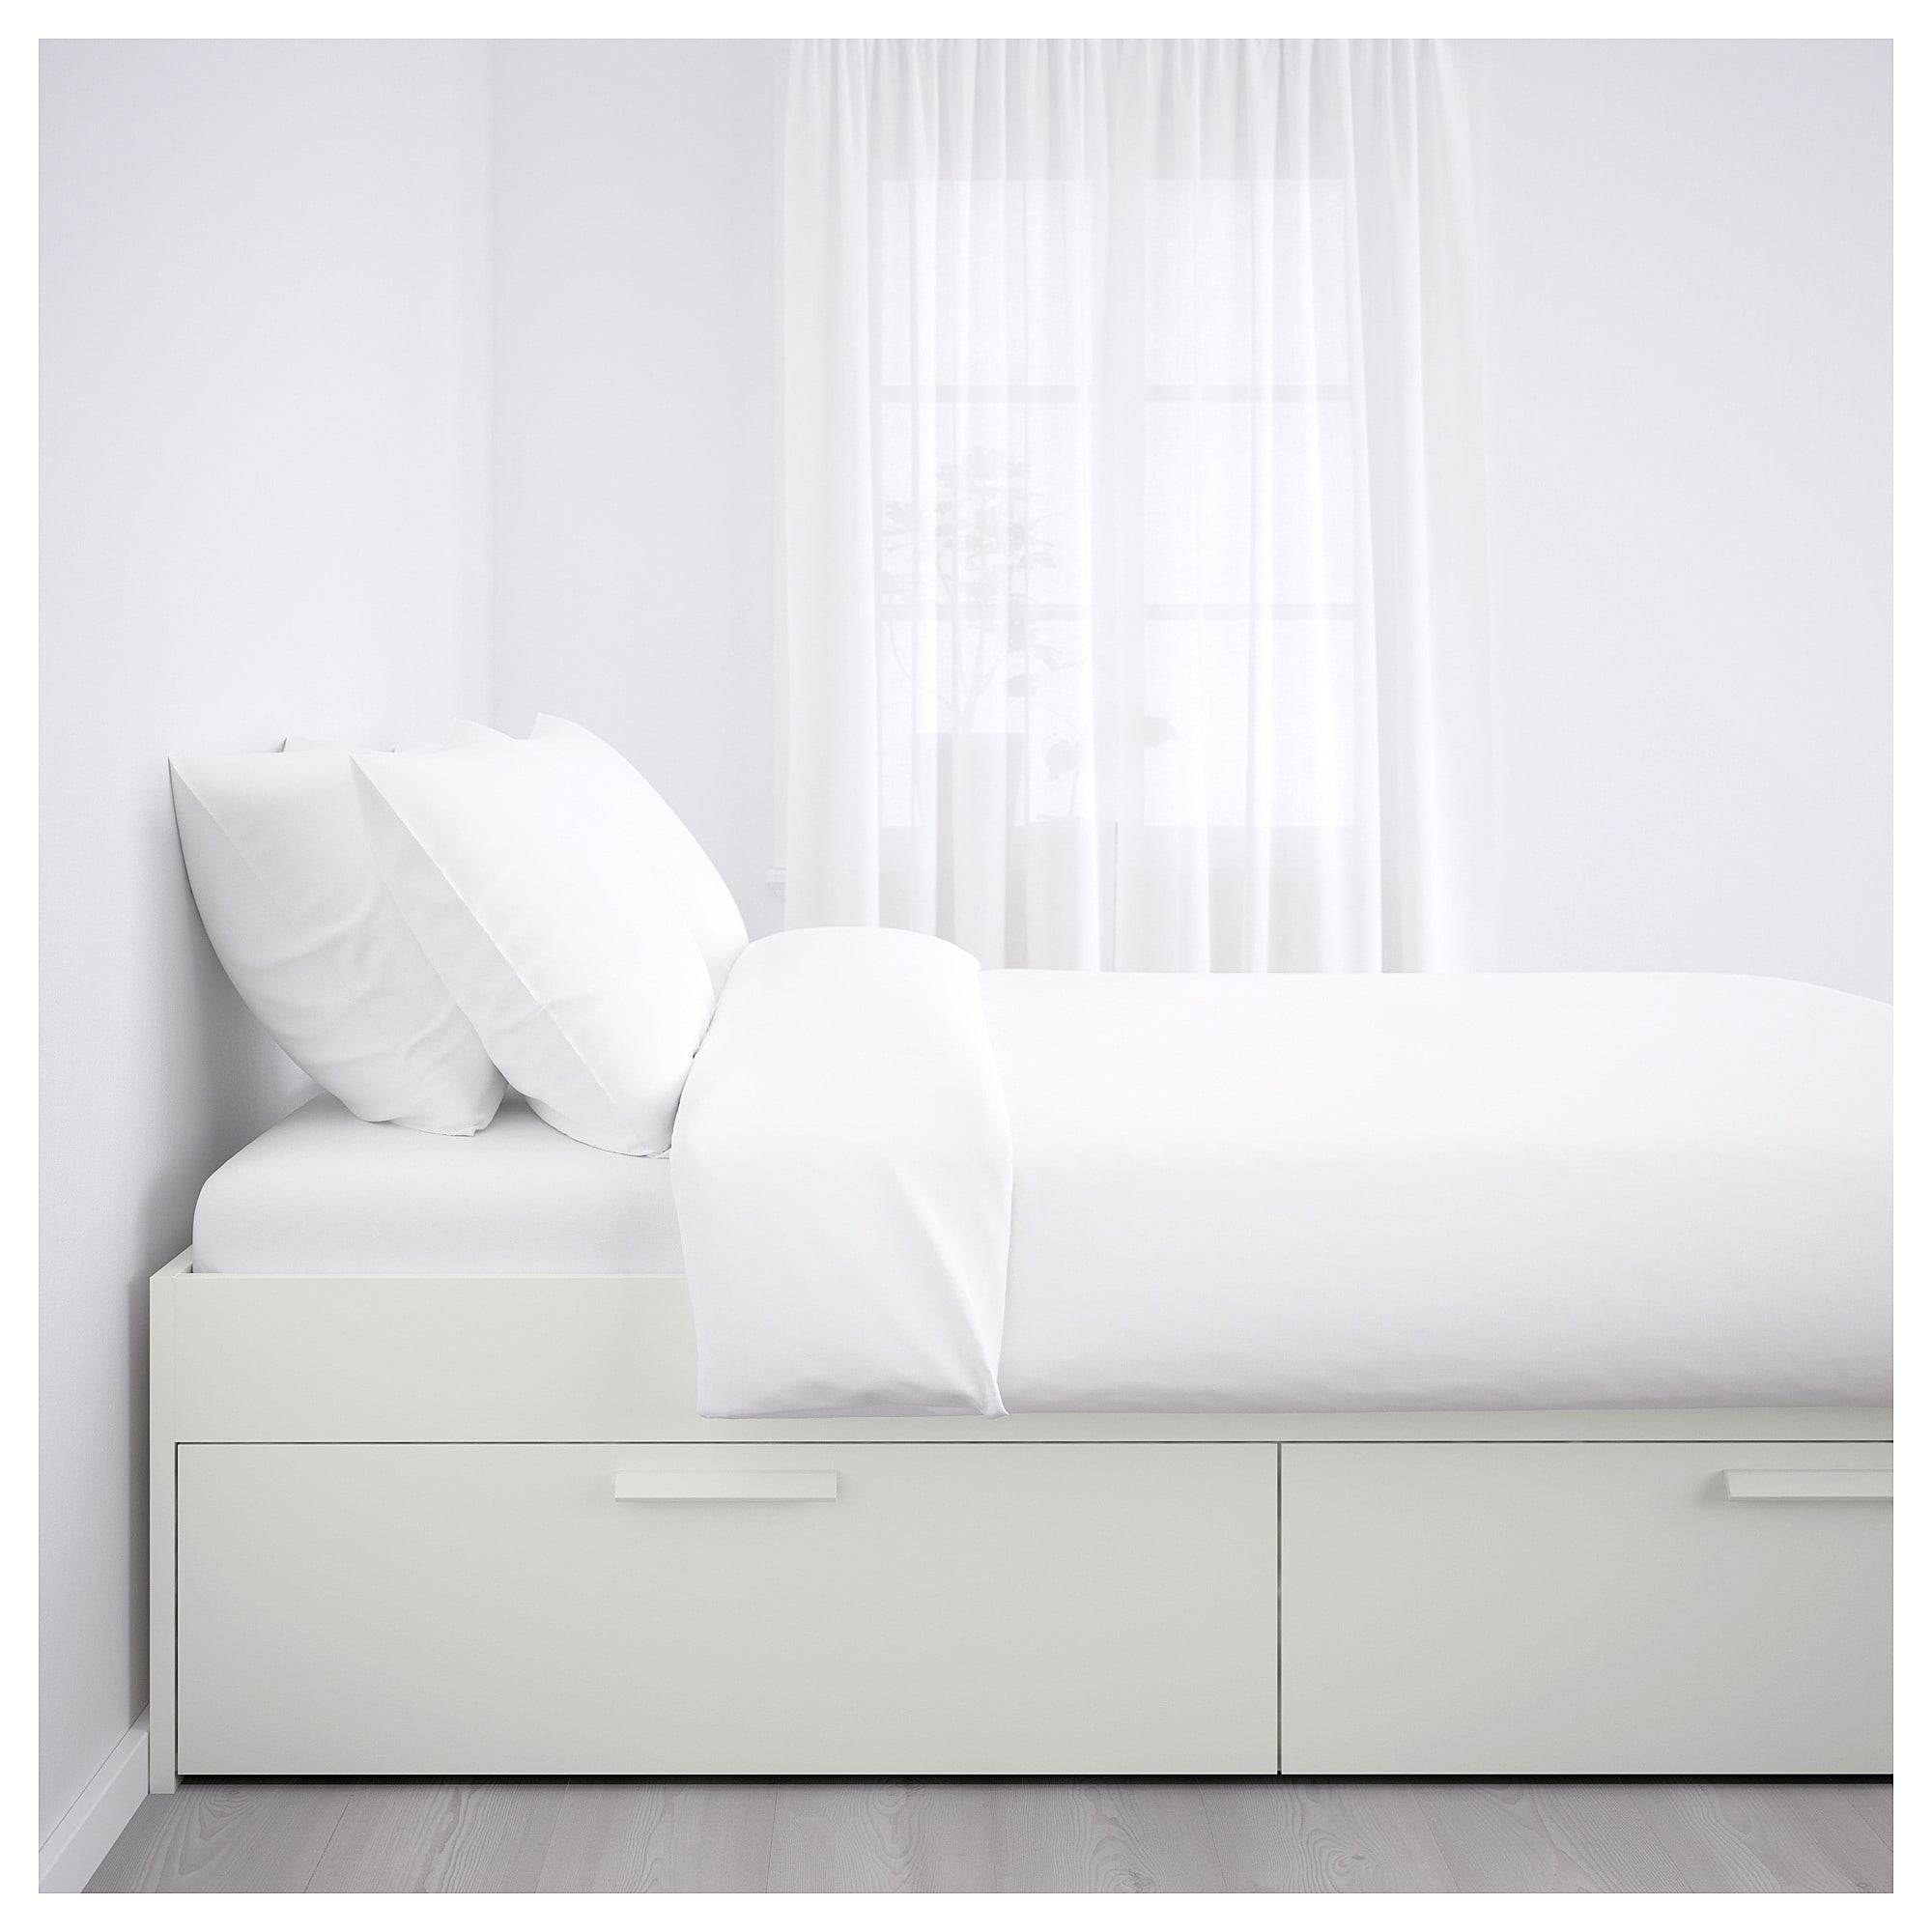 Ikea Brimnes White Bed Frame With Storage Bed Frame With Storage Brimnes Bed Ikea Bed Frames